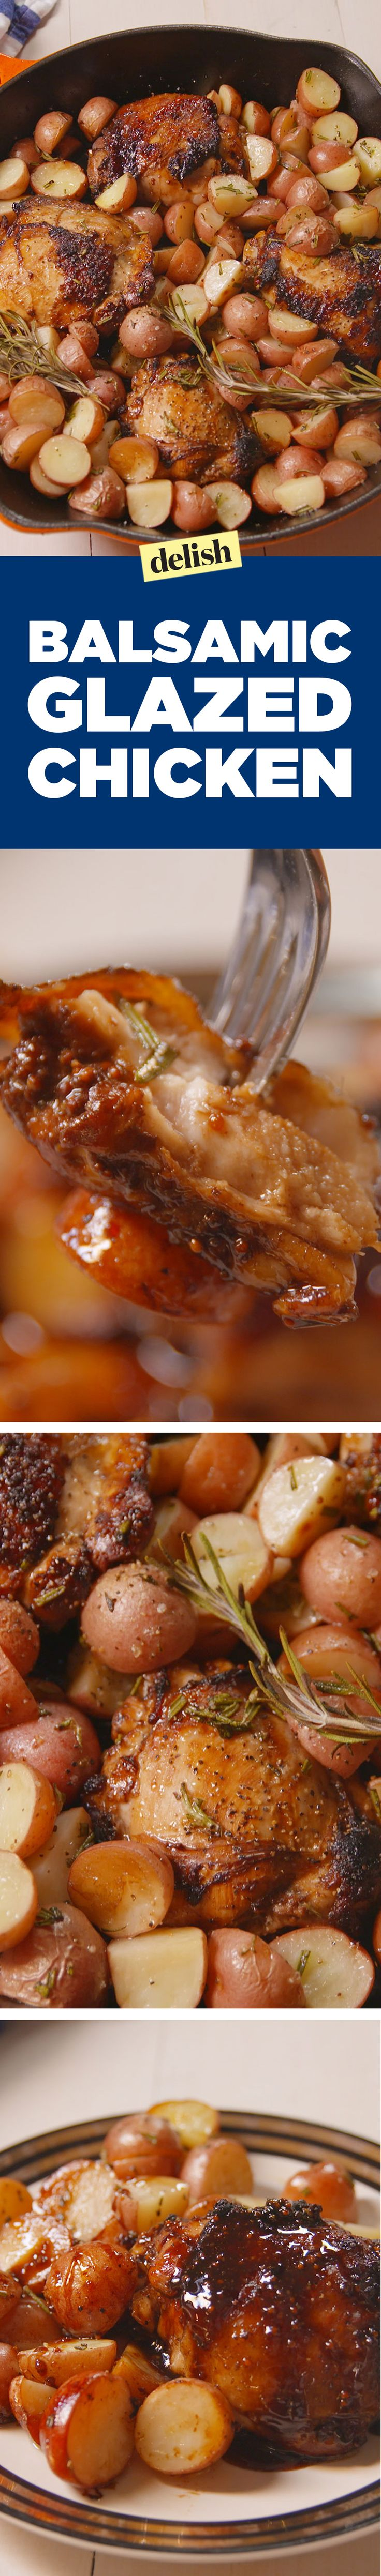 Balsamic Glazed will make you feel like you're out to eat, even when you're not. Get the recipe on Delish.com.